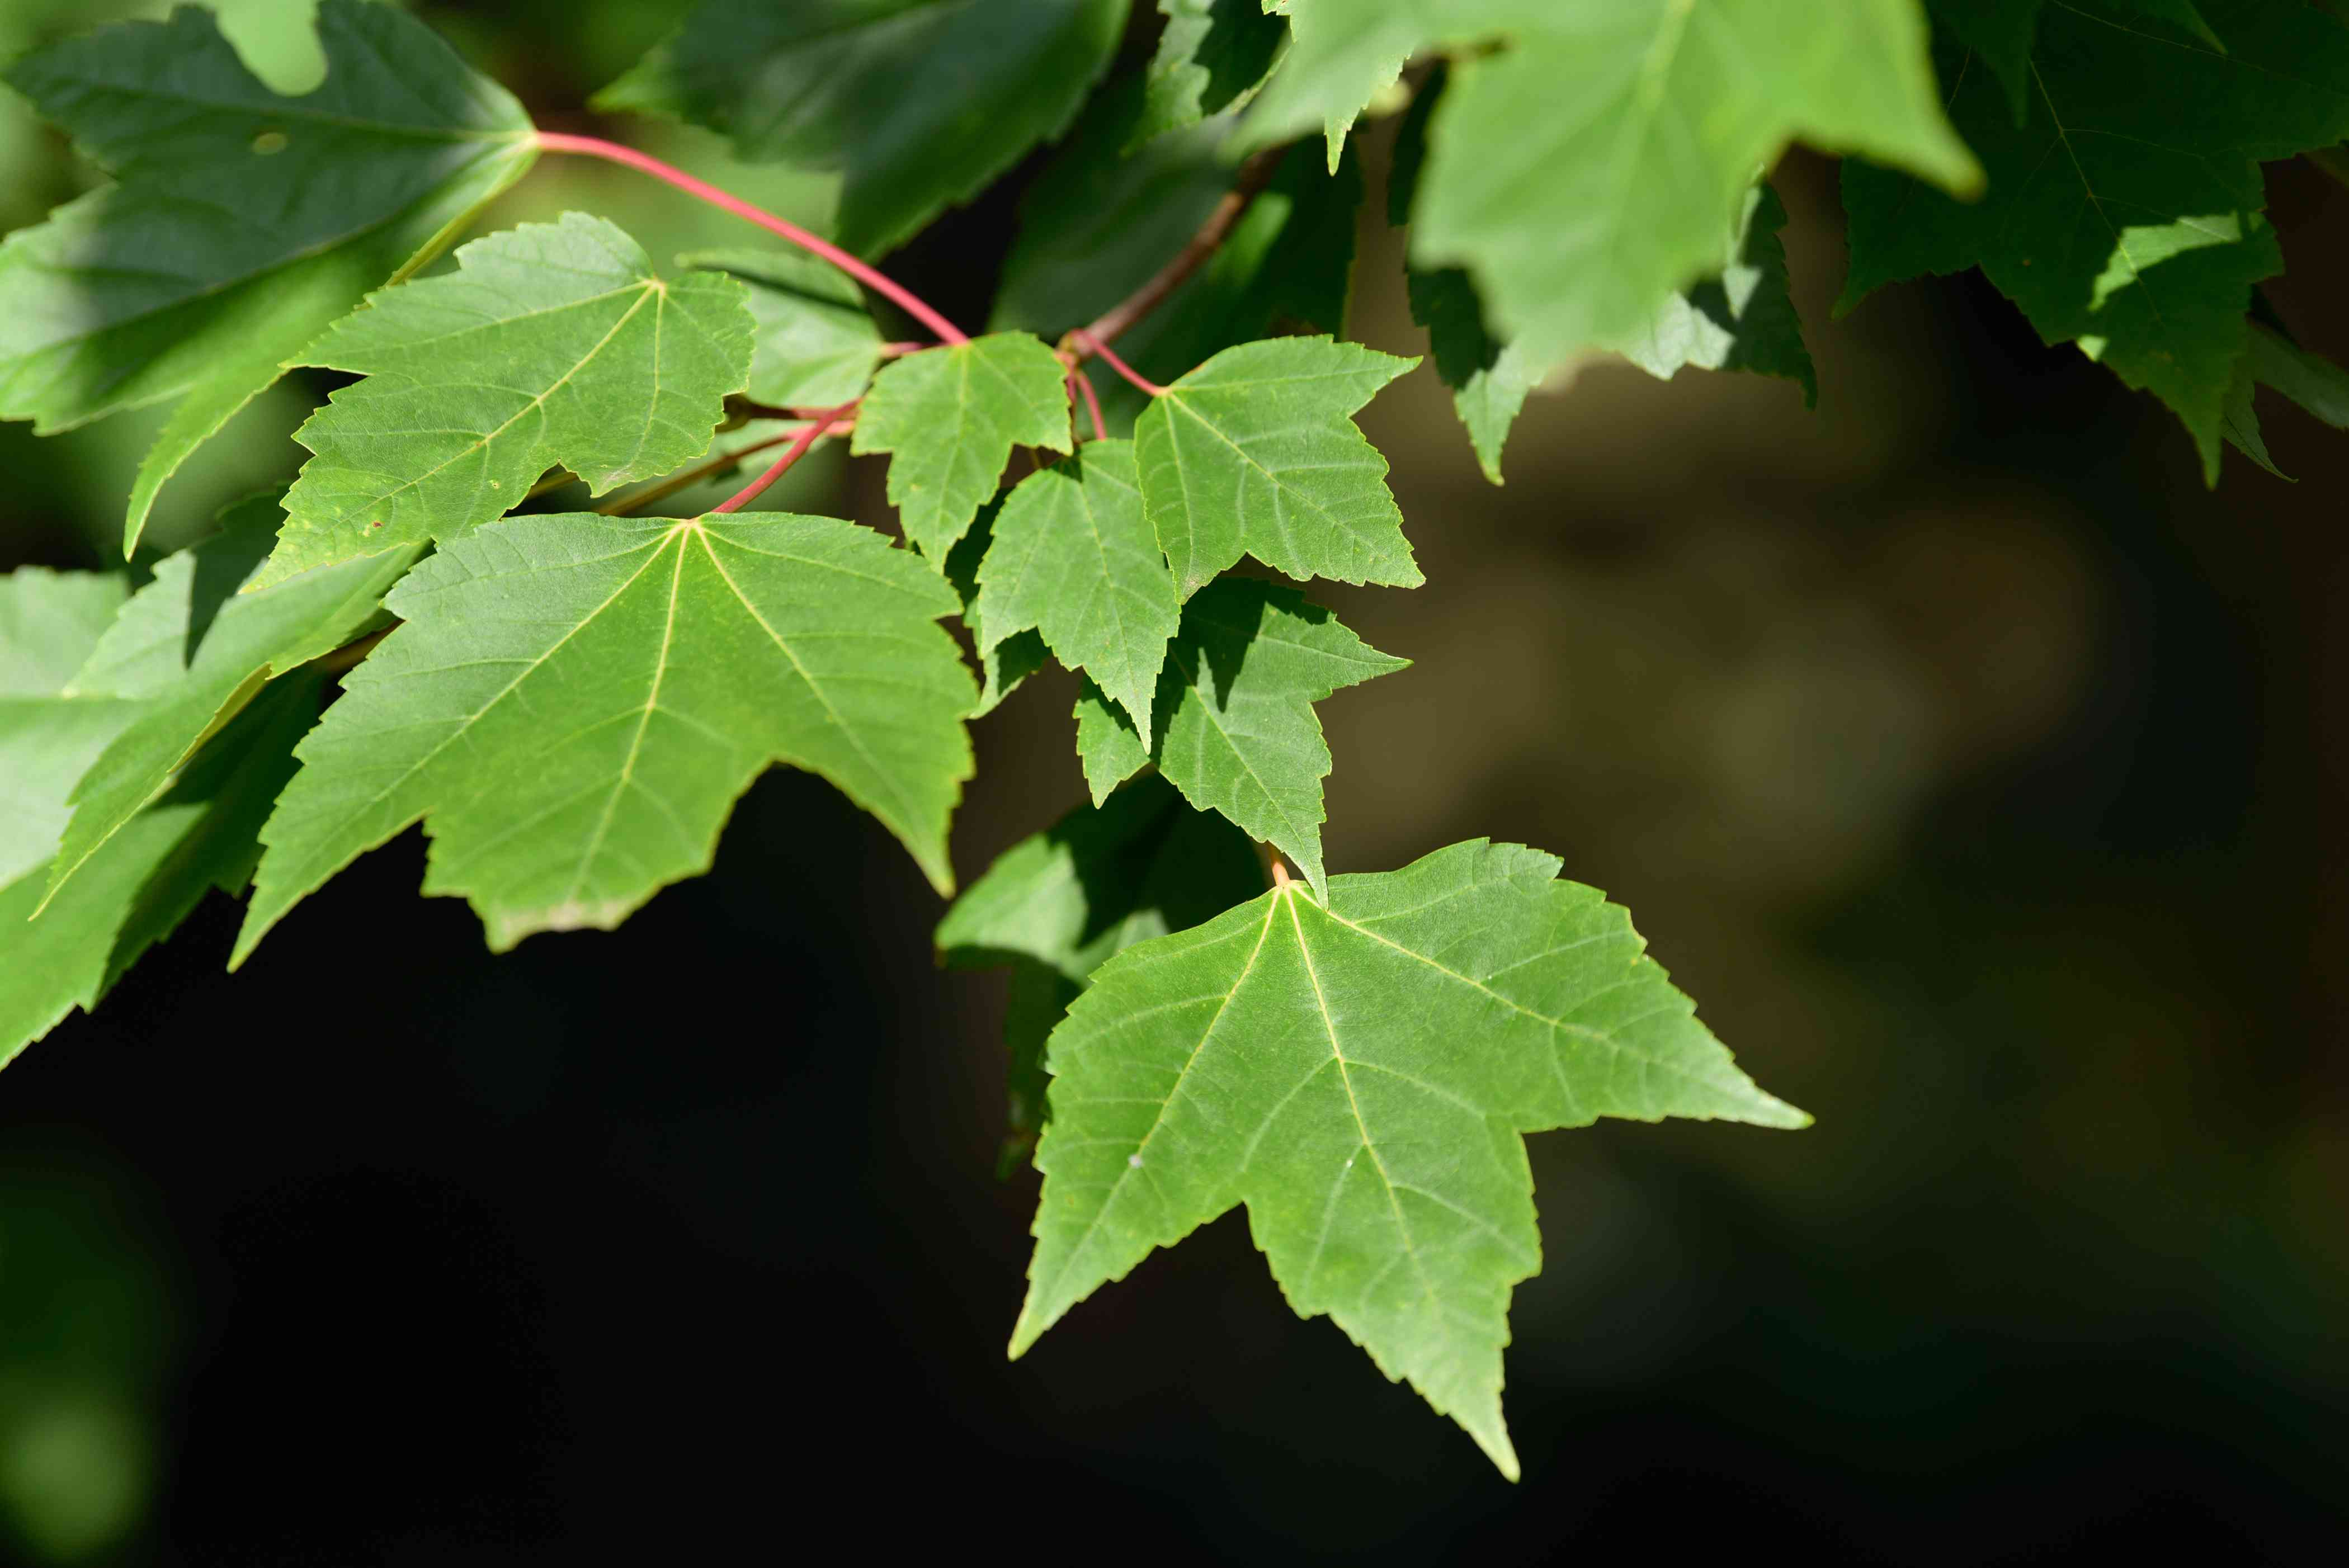 Red sunset maple tree branch with green three-lobed leaves closeup